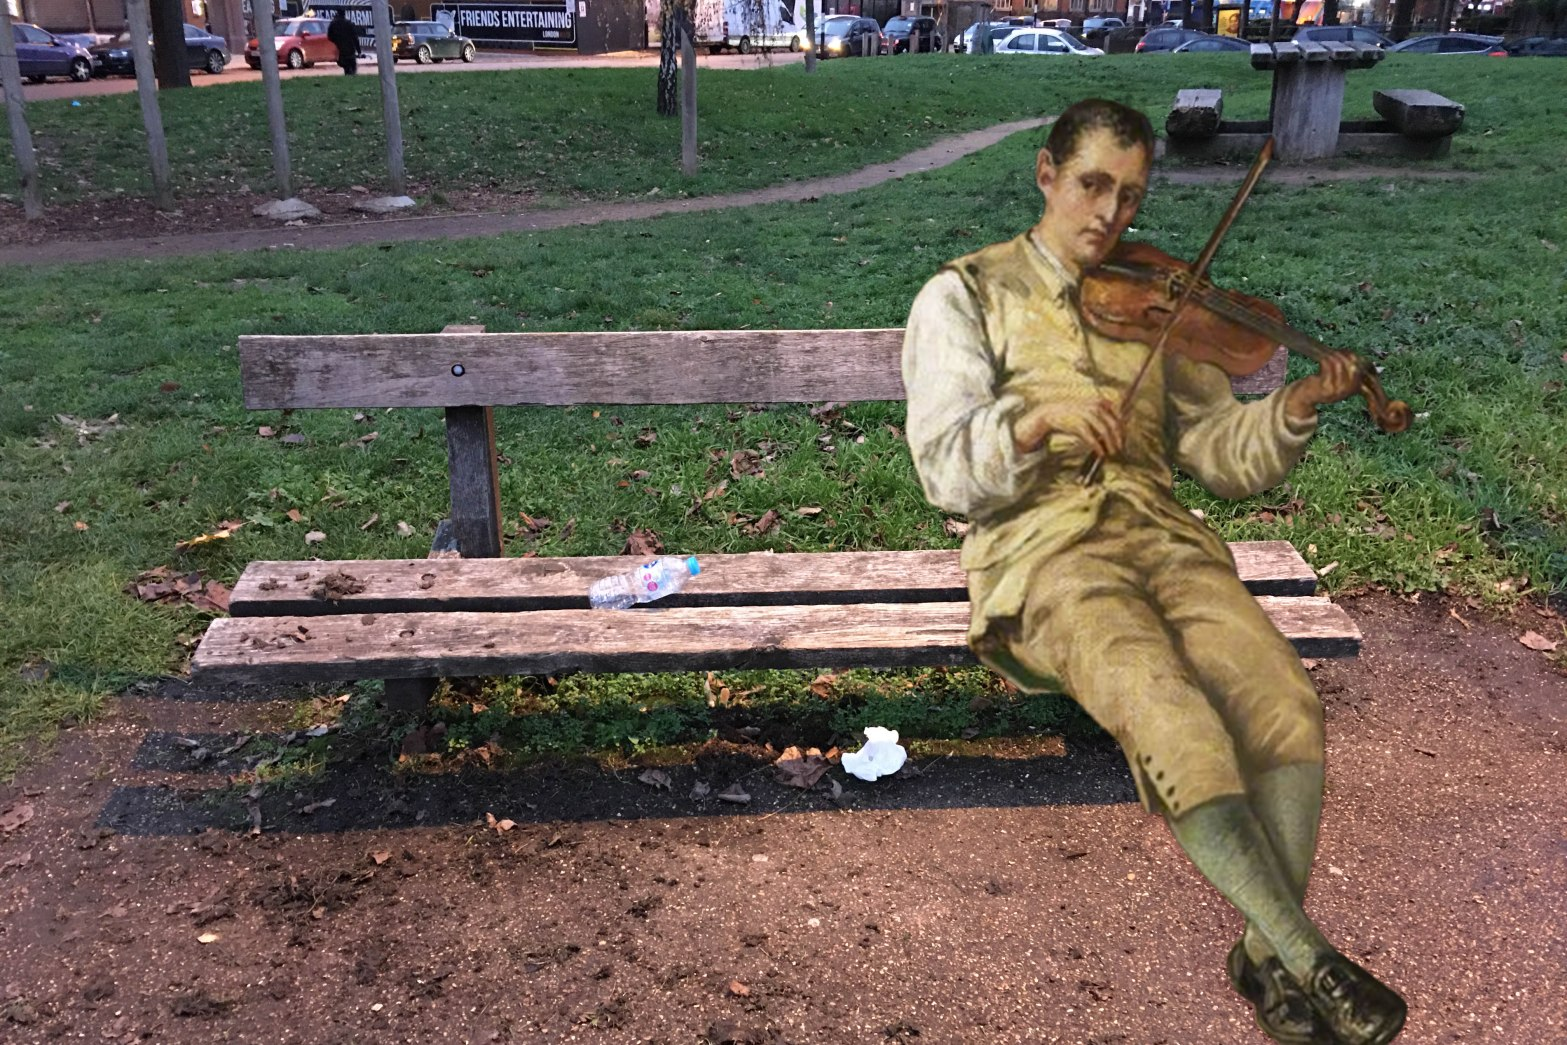 """Photograph of bench in Lower Pepys Park, Deptford, with a violin-playing figure from Alfred Walter Bayes's """"Samuel Crompton Inventing the Spinning Mule"""" (1880)"""